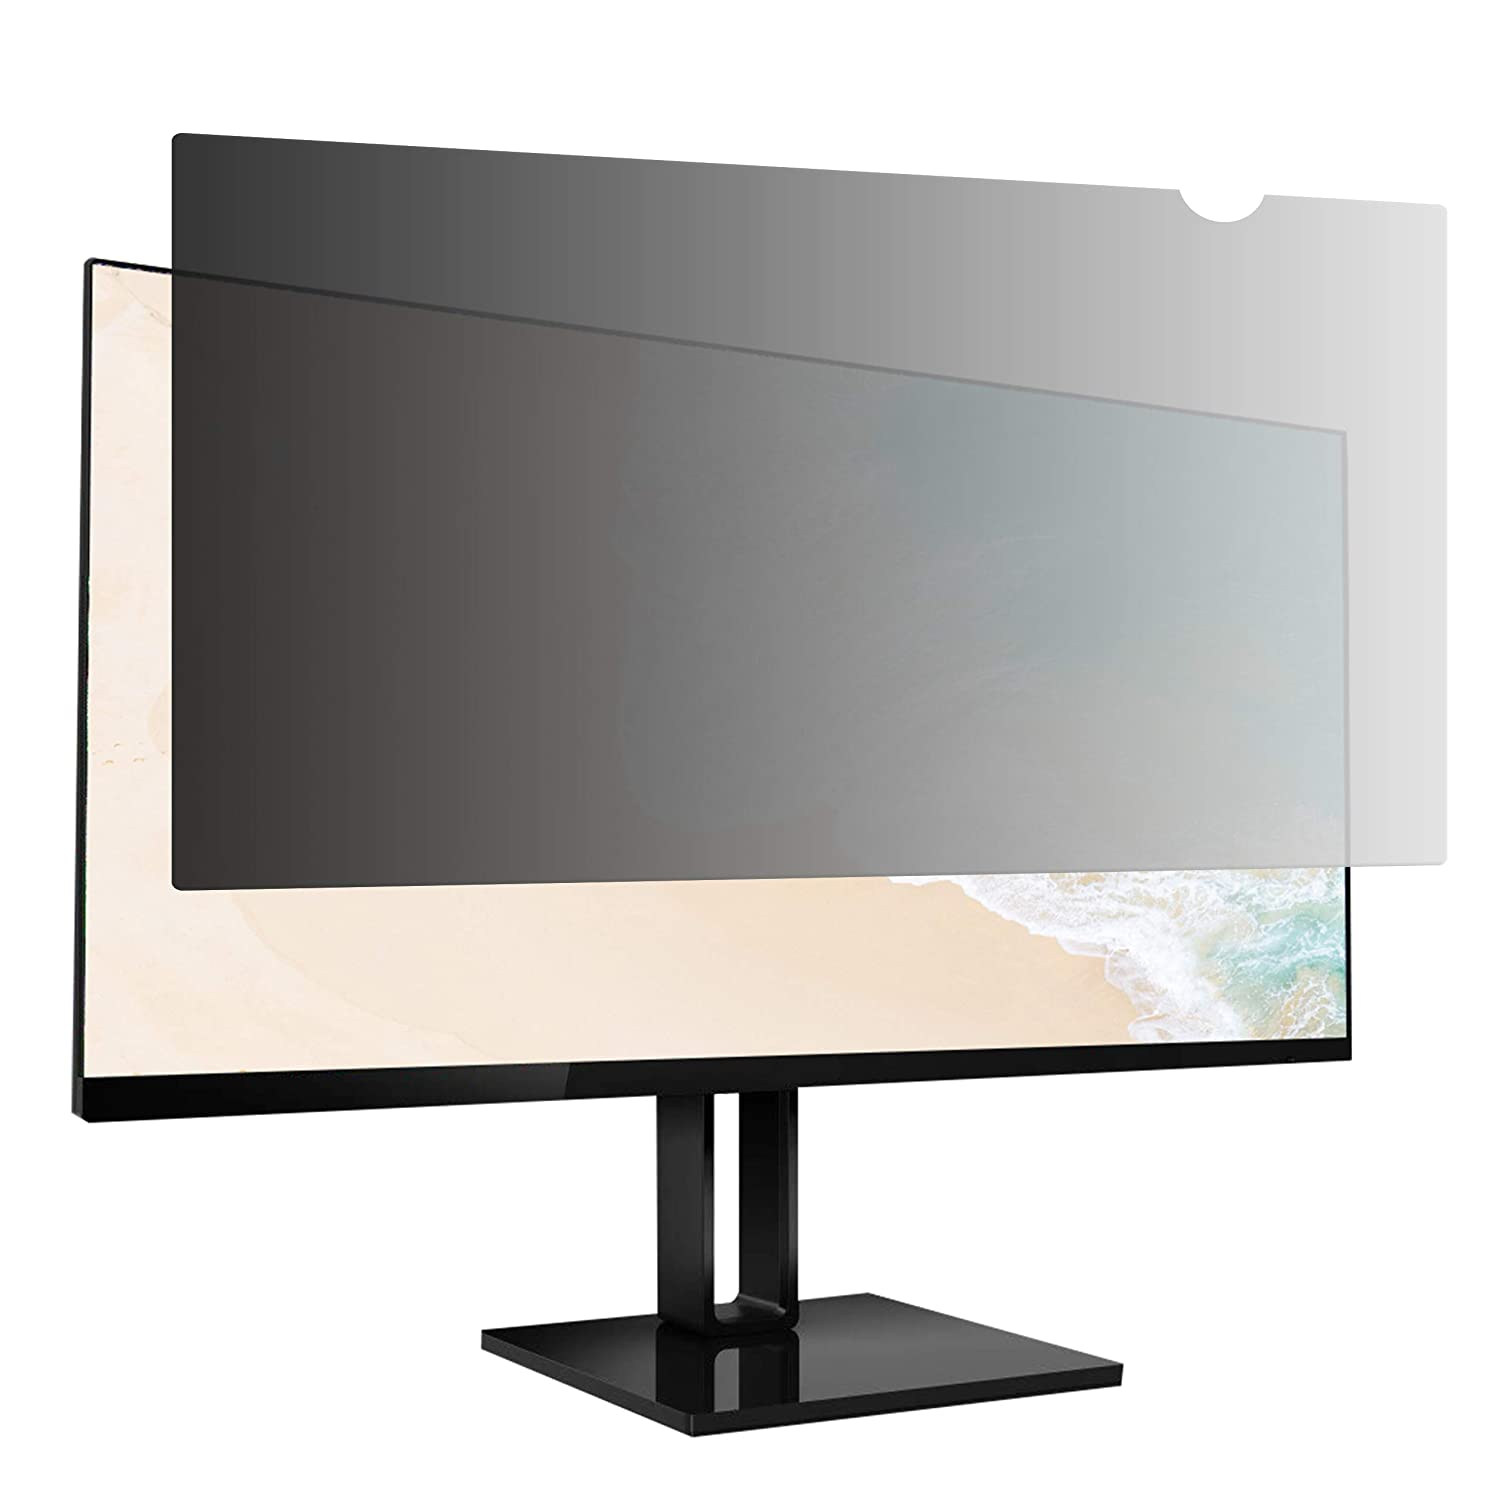 AmazonBasics Privacy Screen Filter for 21.5 Inch Widescreen Monitor (16:9)